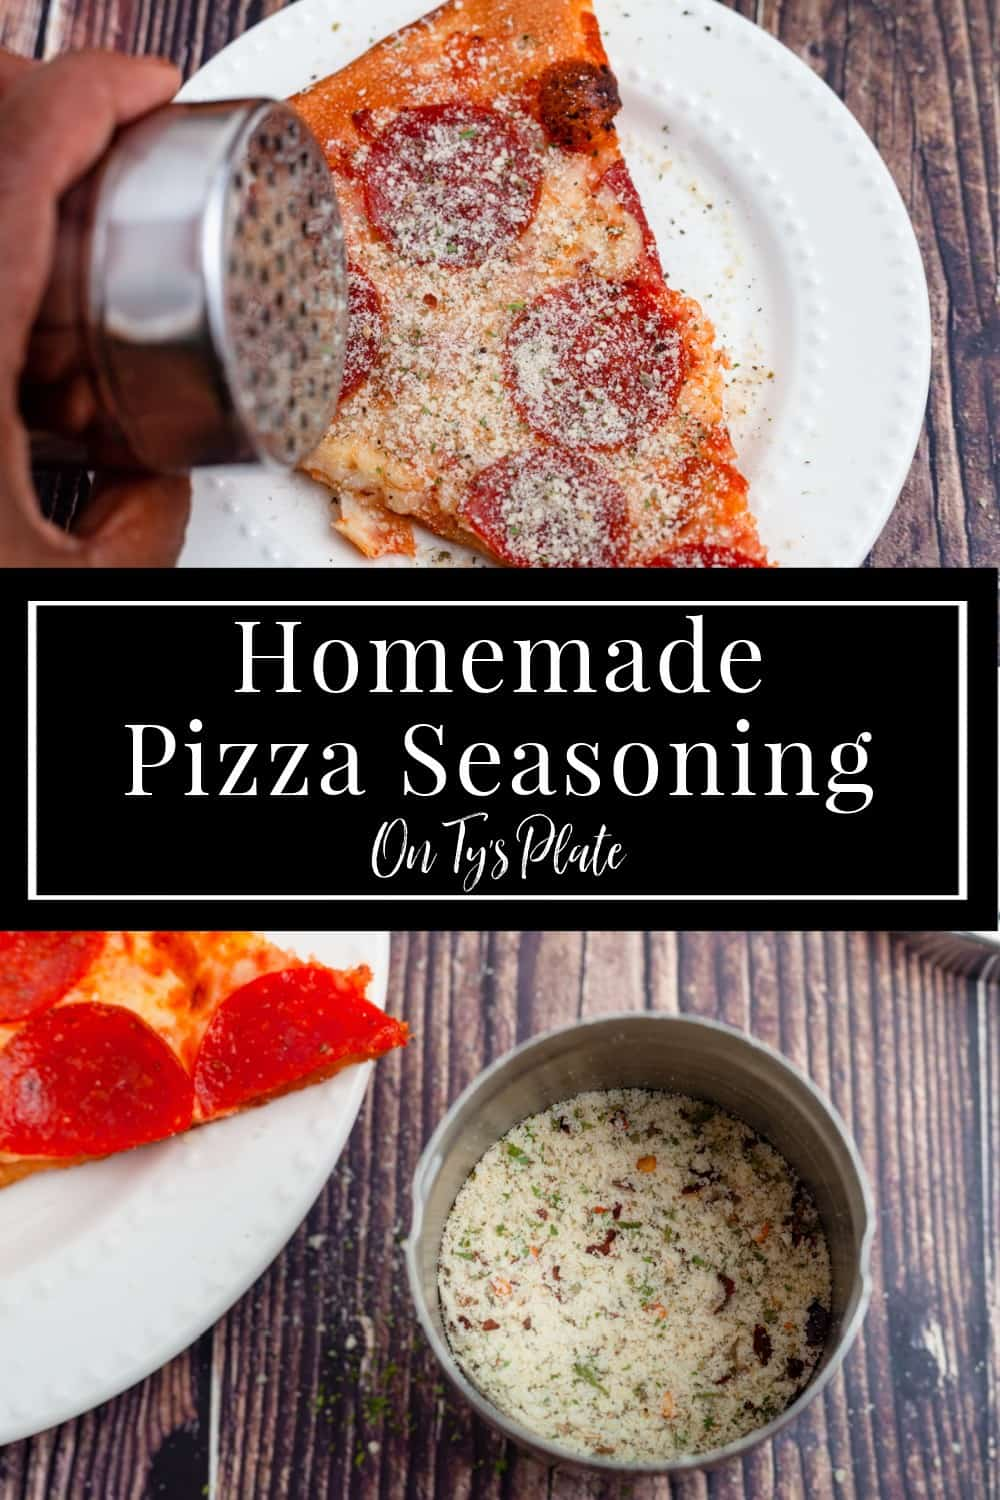 Homemade Pizza Seasoning